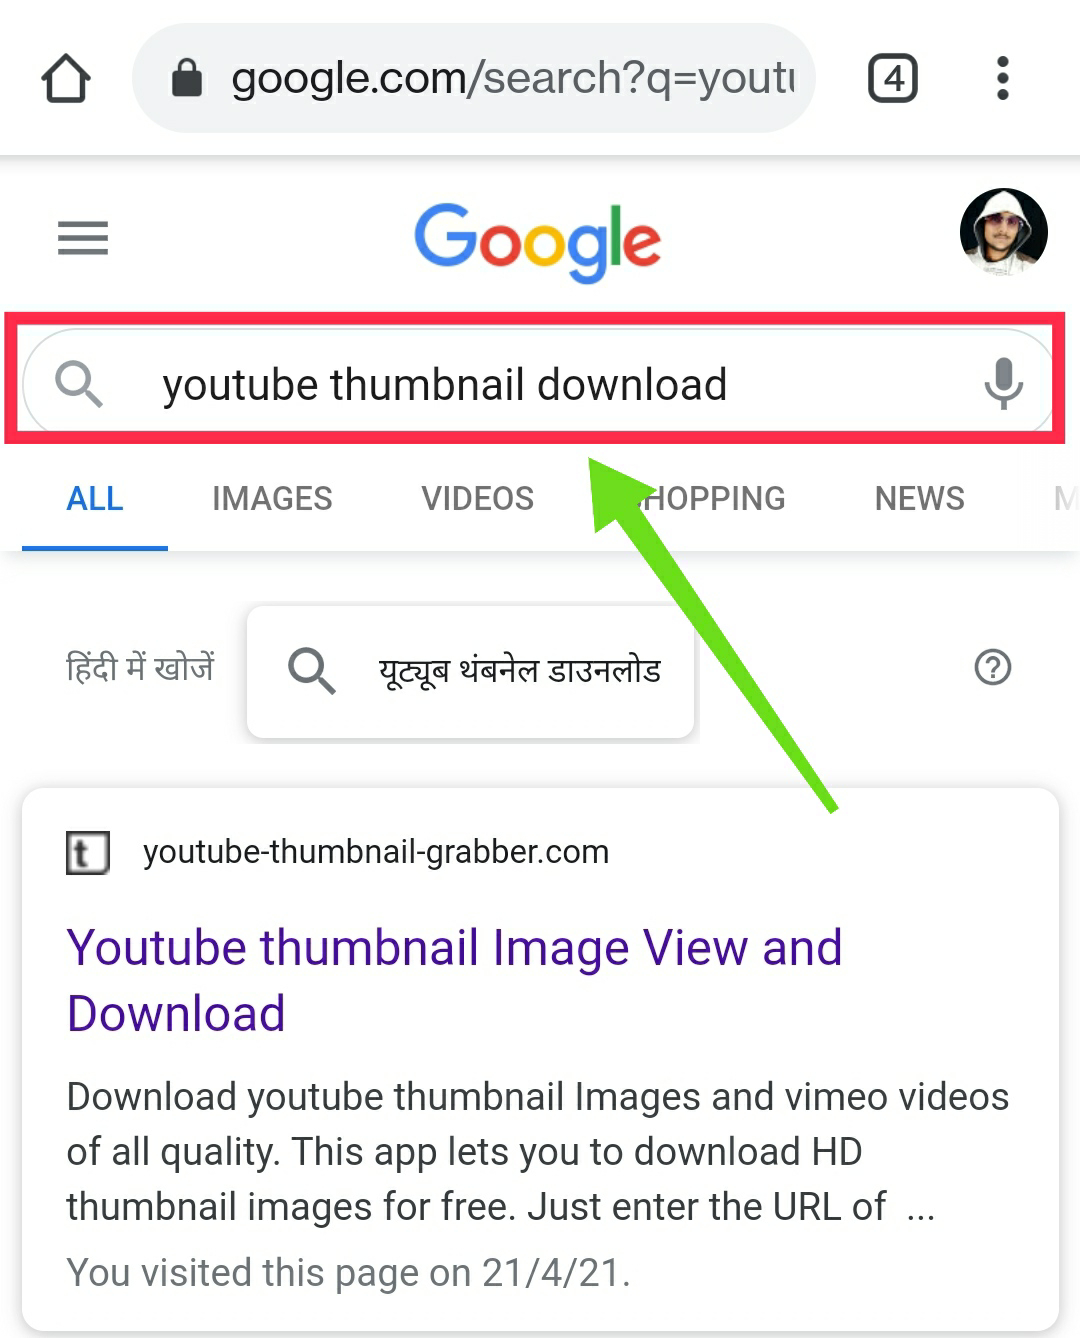 YouTube Thumbnail Downloader Website 2021